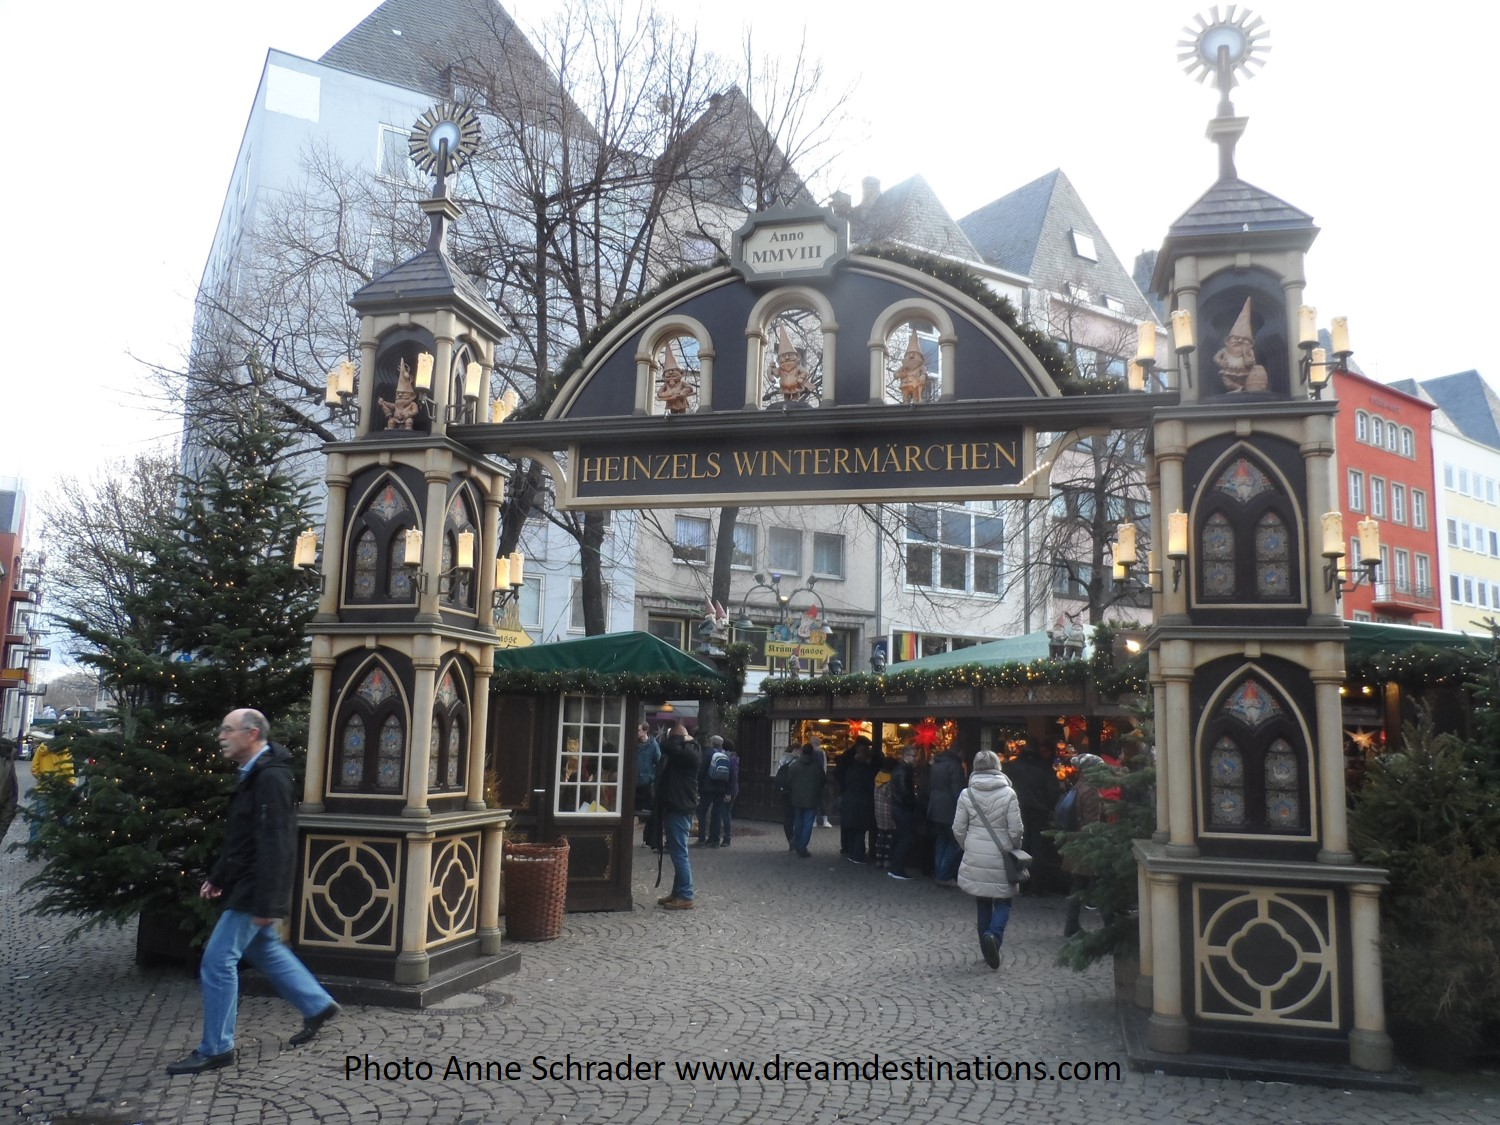 Our 2018 Christmas Markets Cruise—this is one of 7 Christmas Markets in Cologne, Germany